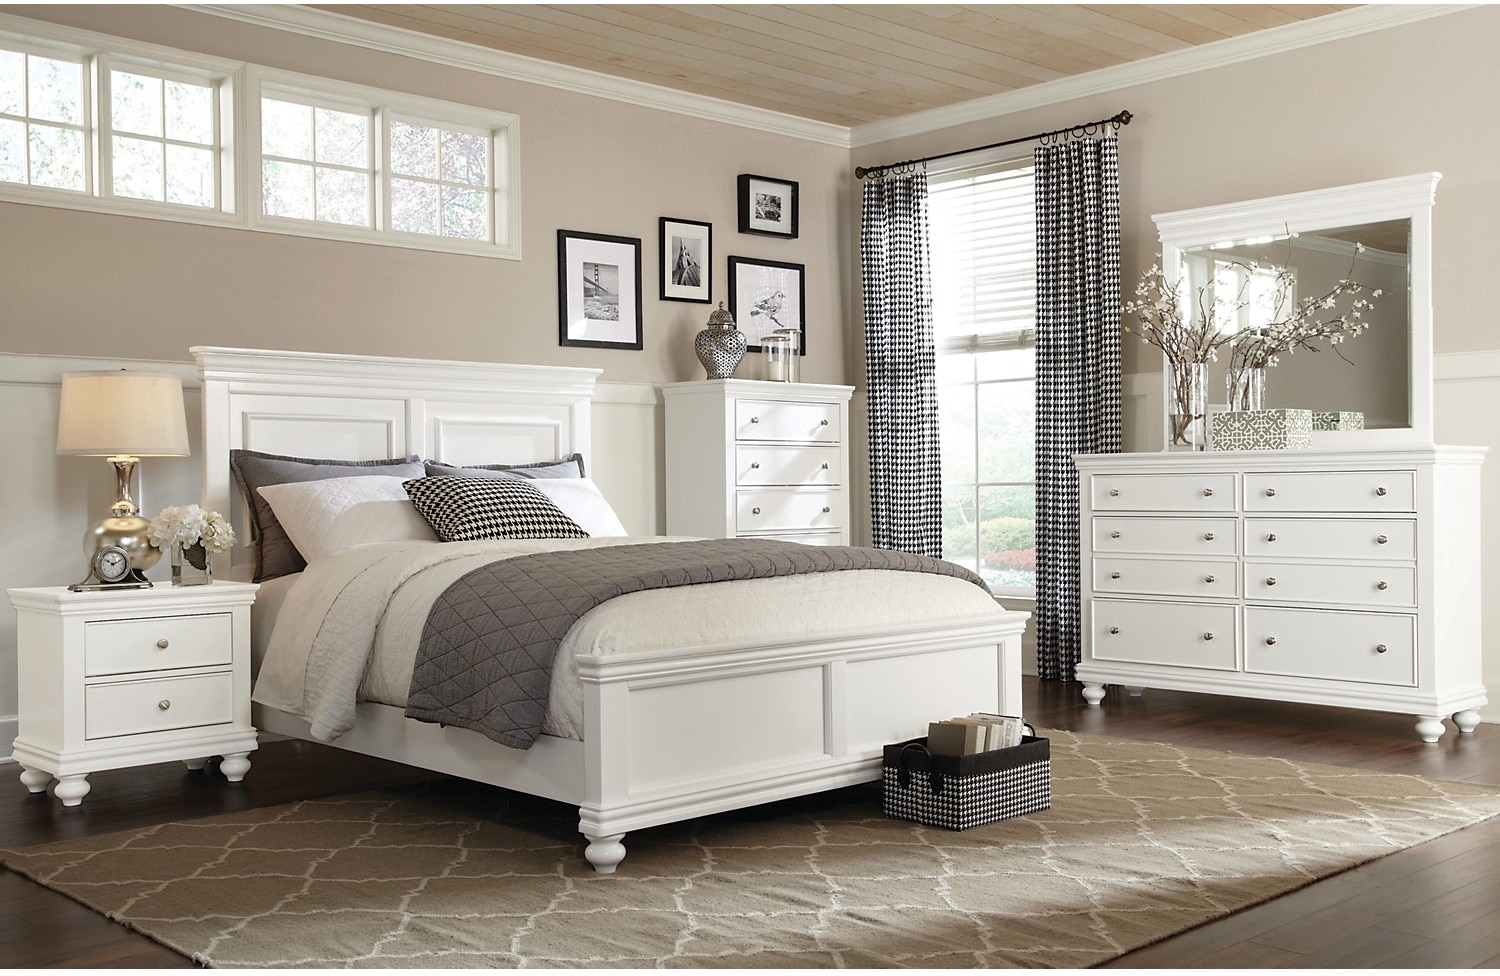 6 Piece Bedroom Sets Bedroom Furniture Bridgeport 6 Piece Queen Bedroom Set U2013 White